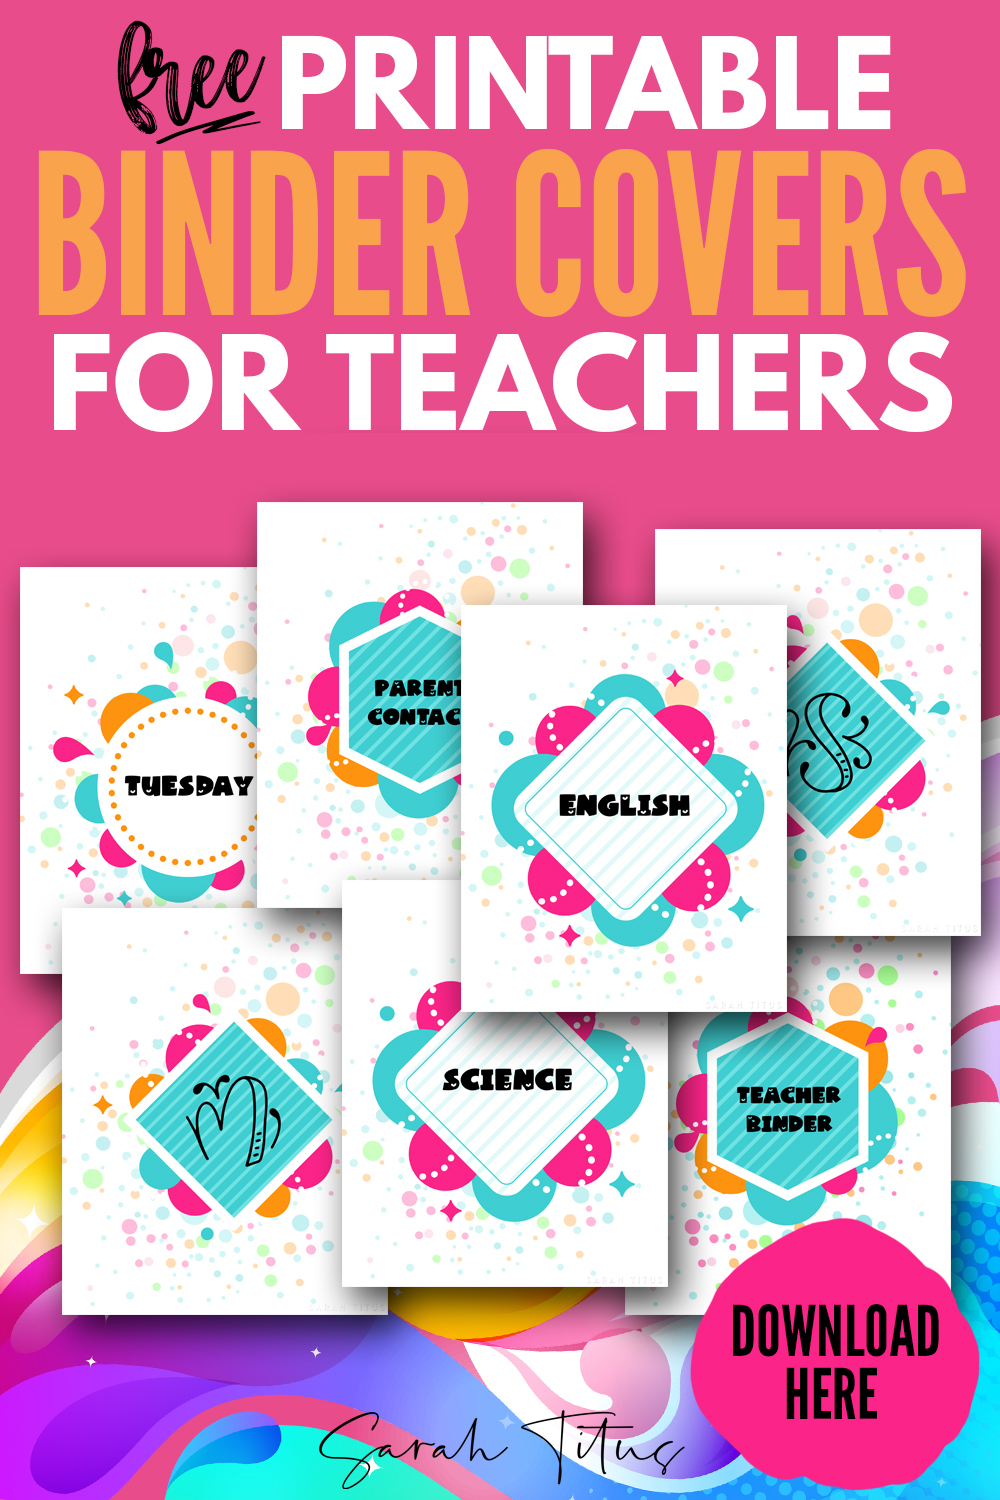 Free Printable Binder Covers For Teachers To Organize Students Sarah Titus From Homeless To 8 Figures